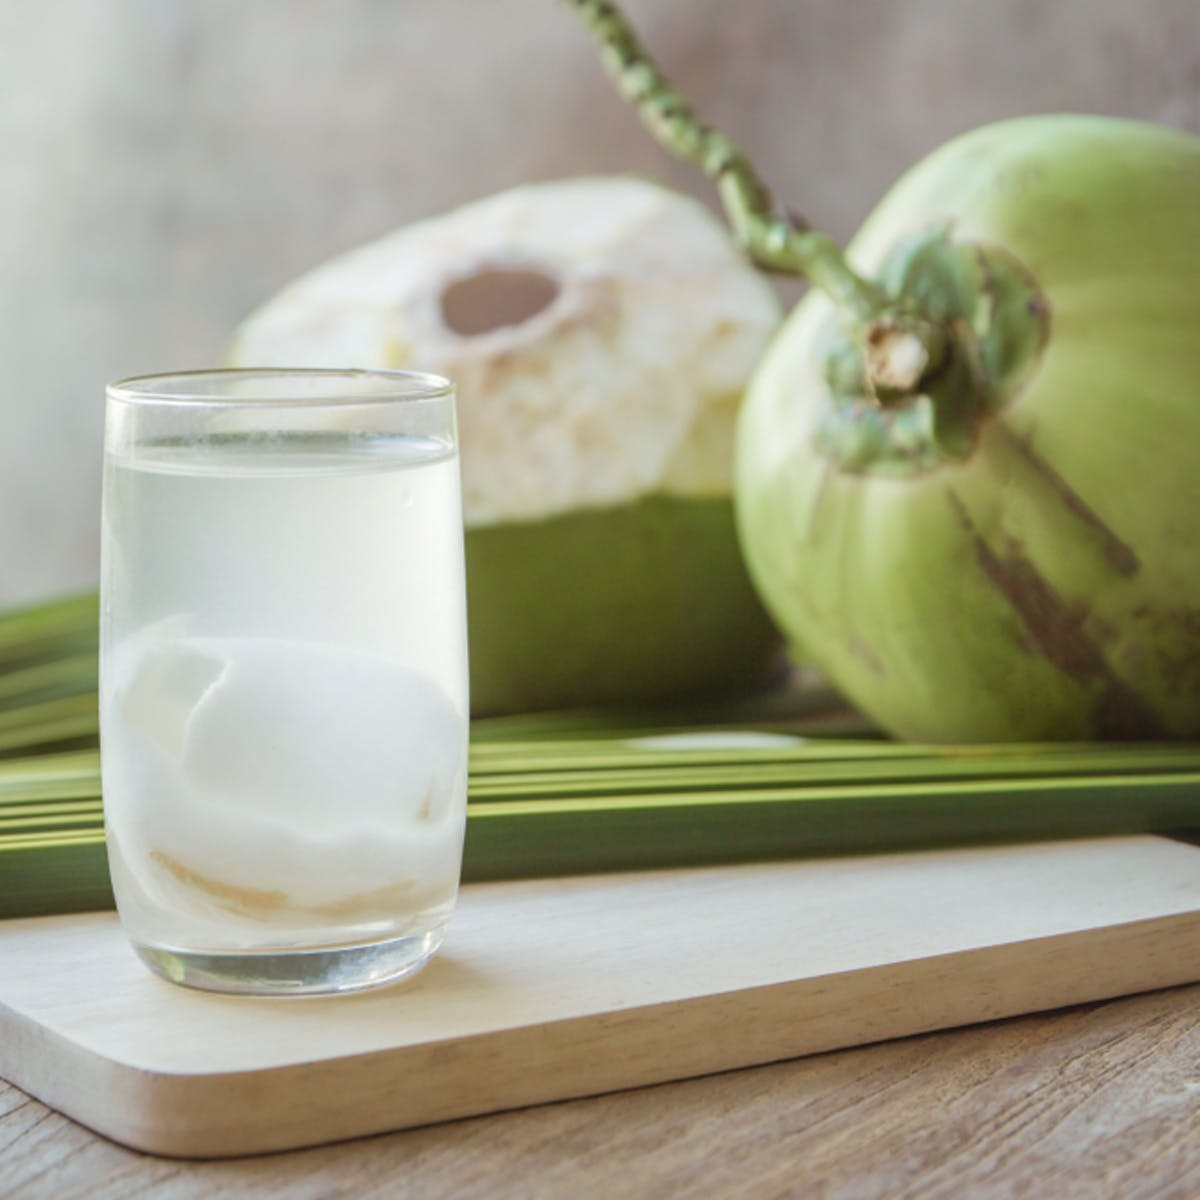 is coconut water good for you? we asked five experts